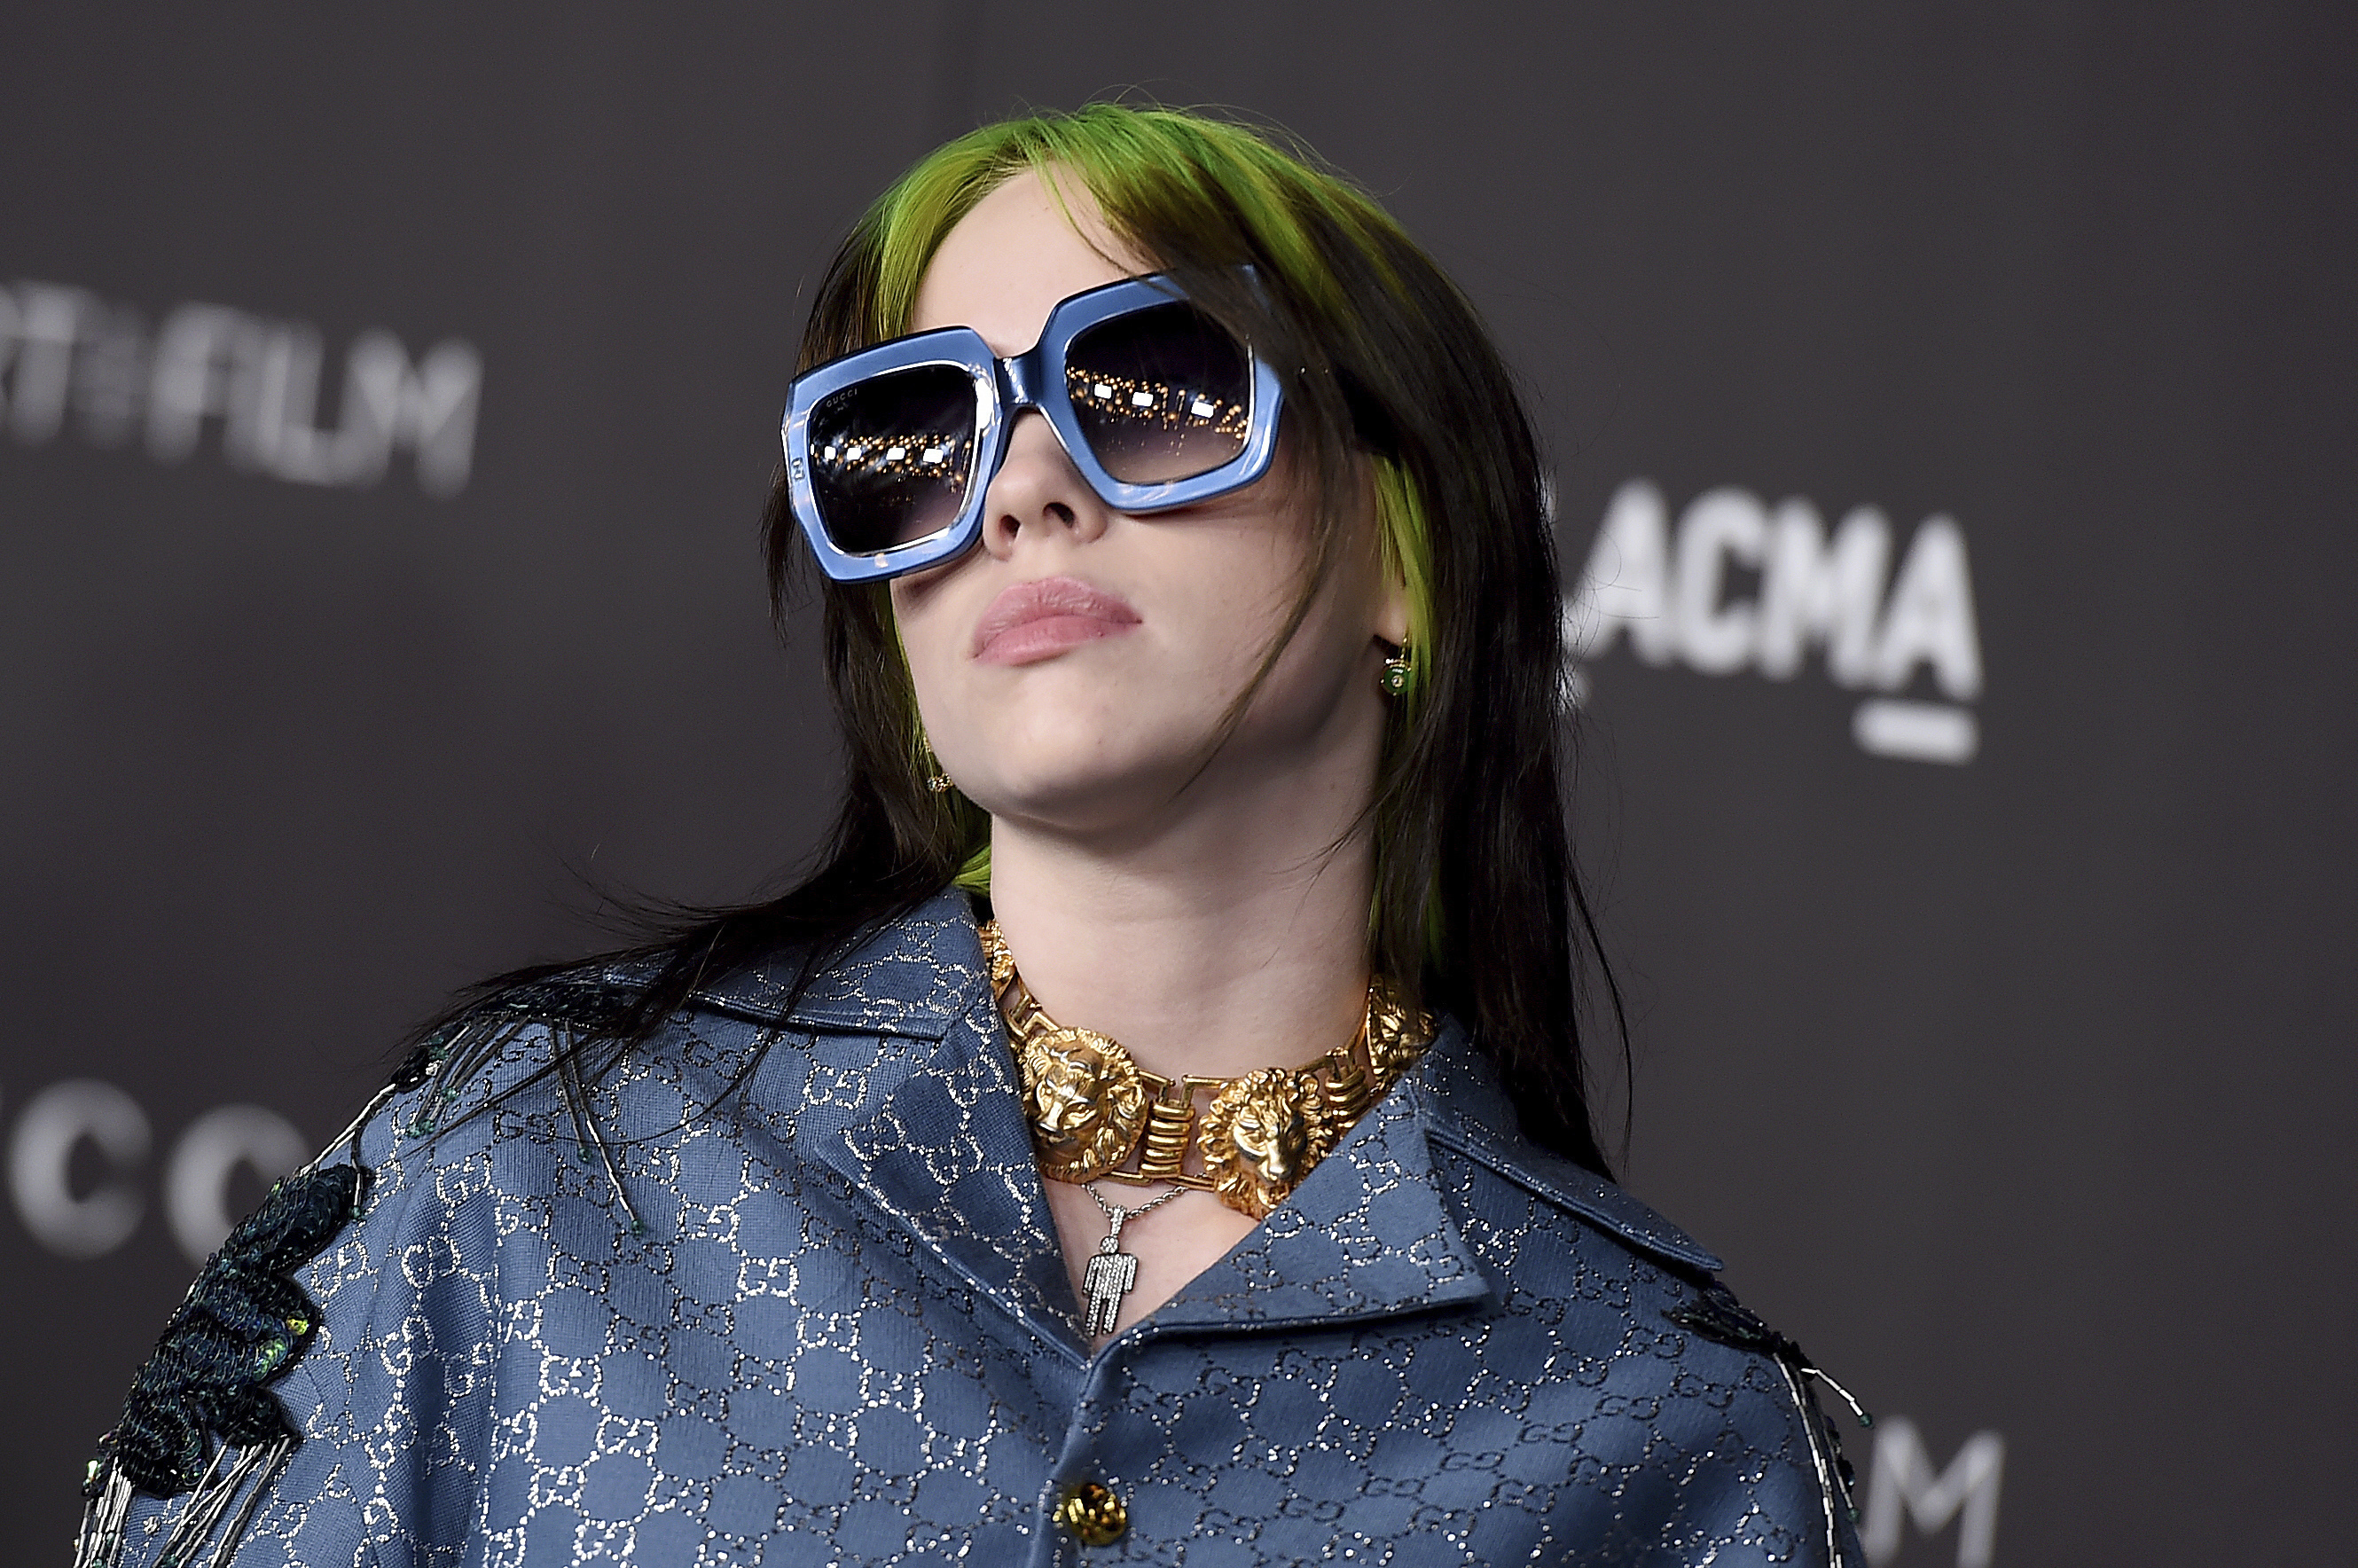 This Nov. 2, 2019 file photo shows singer Billie Eilish at the 2019 LACMA Art and Film Gala in Los Angeles.